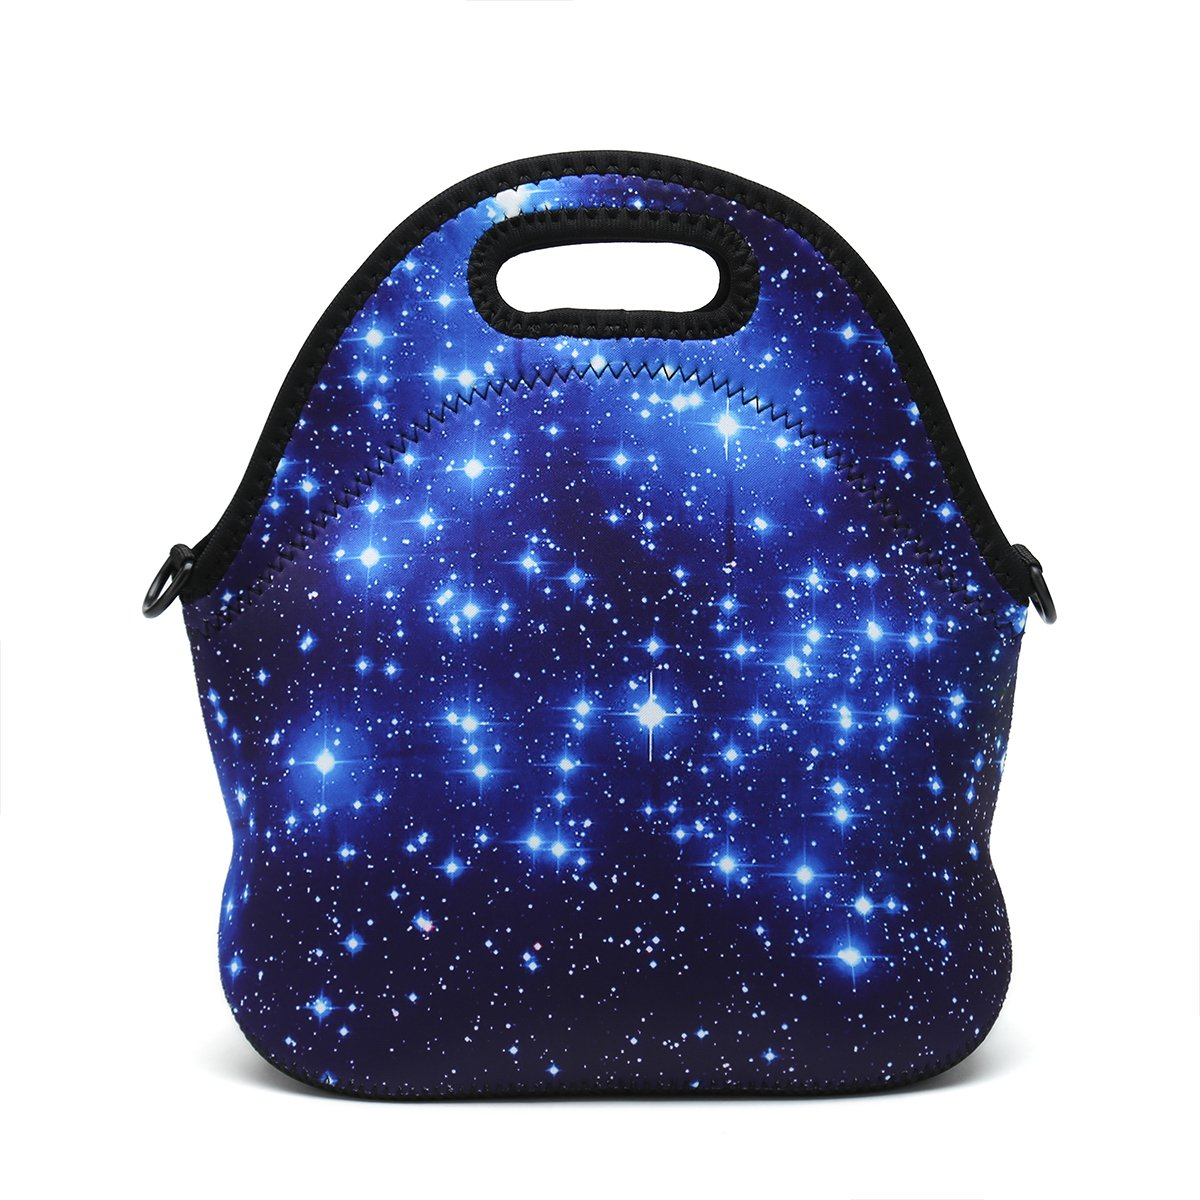 bluee Starry Sky Boys Girls Kids Women Adults Insulated School Travel Outdoor Thermal Waterproof Carrying Lunch Tote Bag Cooler Box Neoprene Lunchbox Container Case for Outdoors,Work,Office,School (Unicorn)